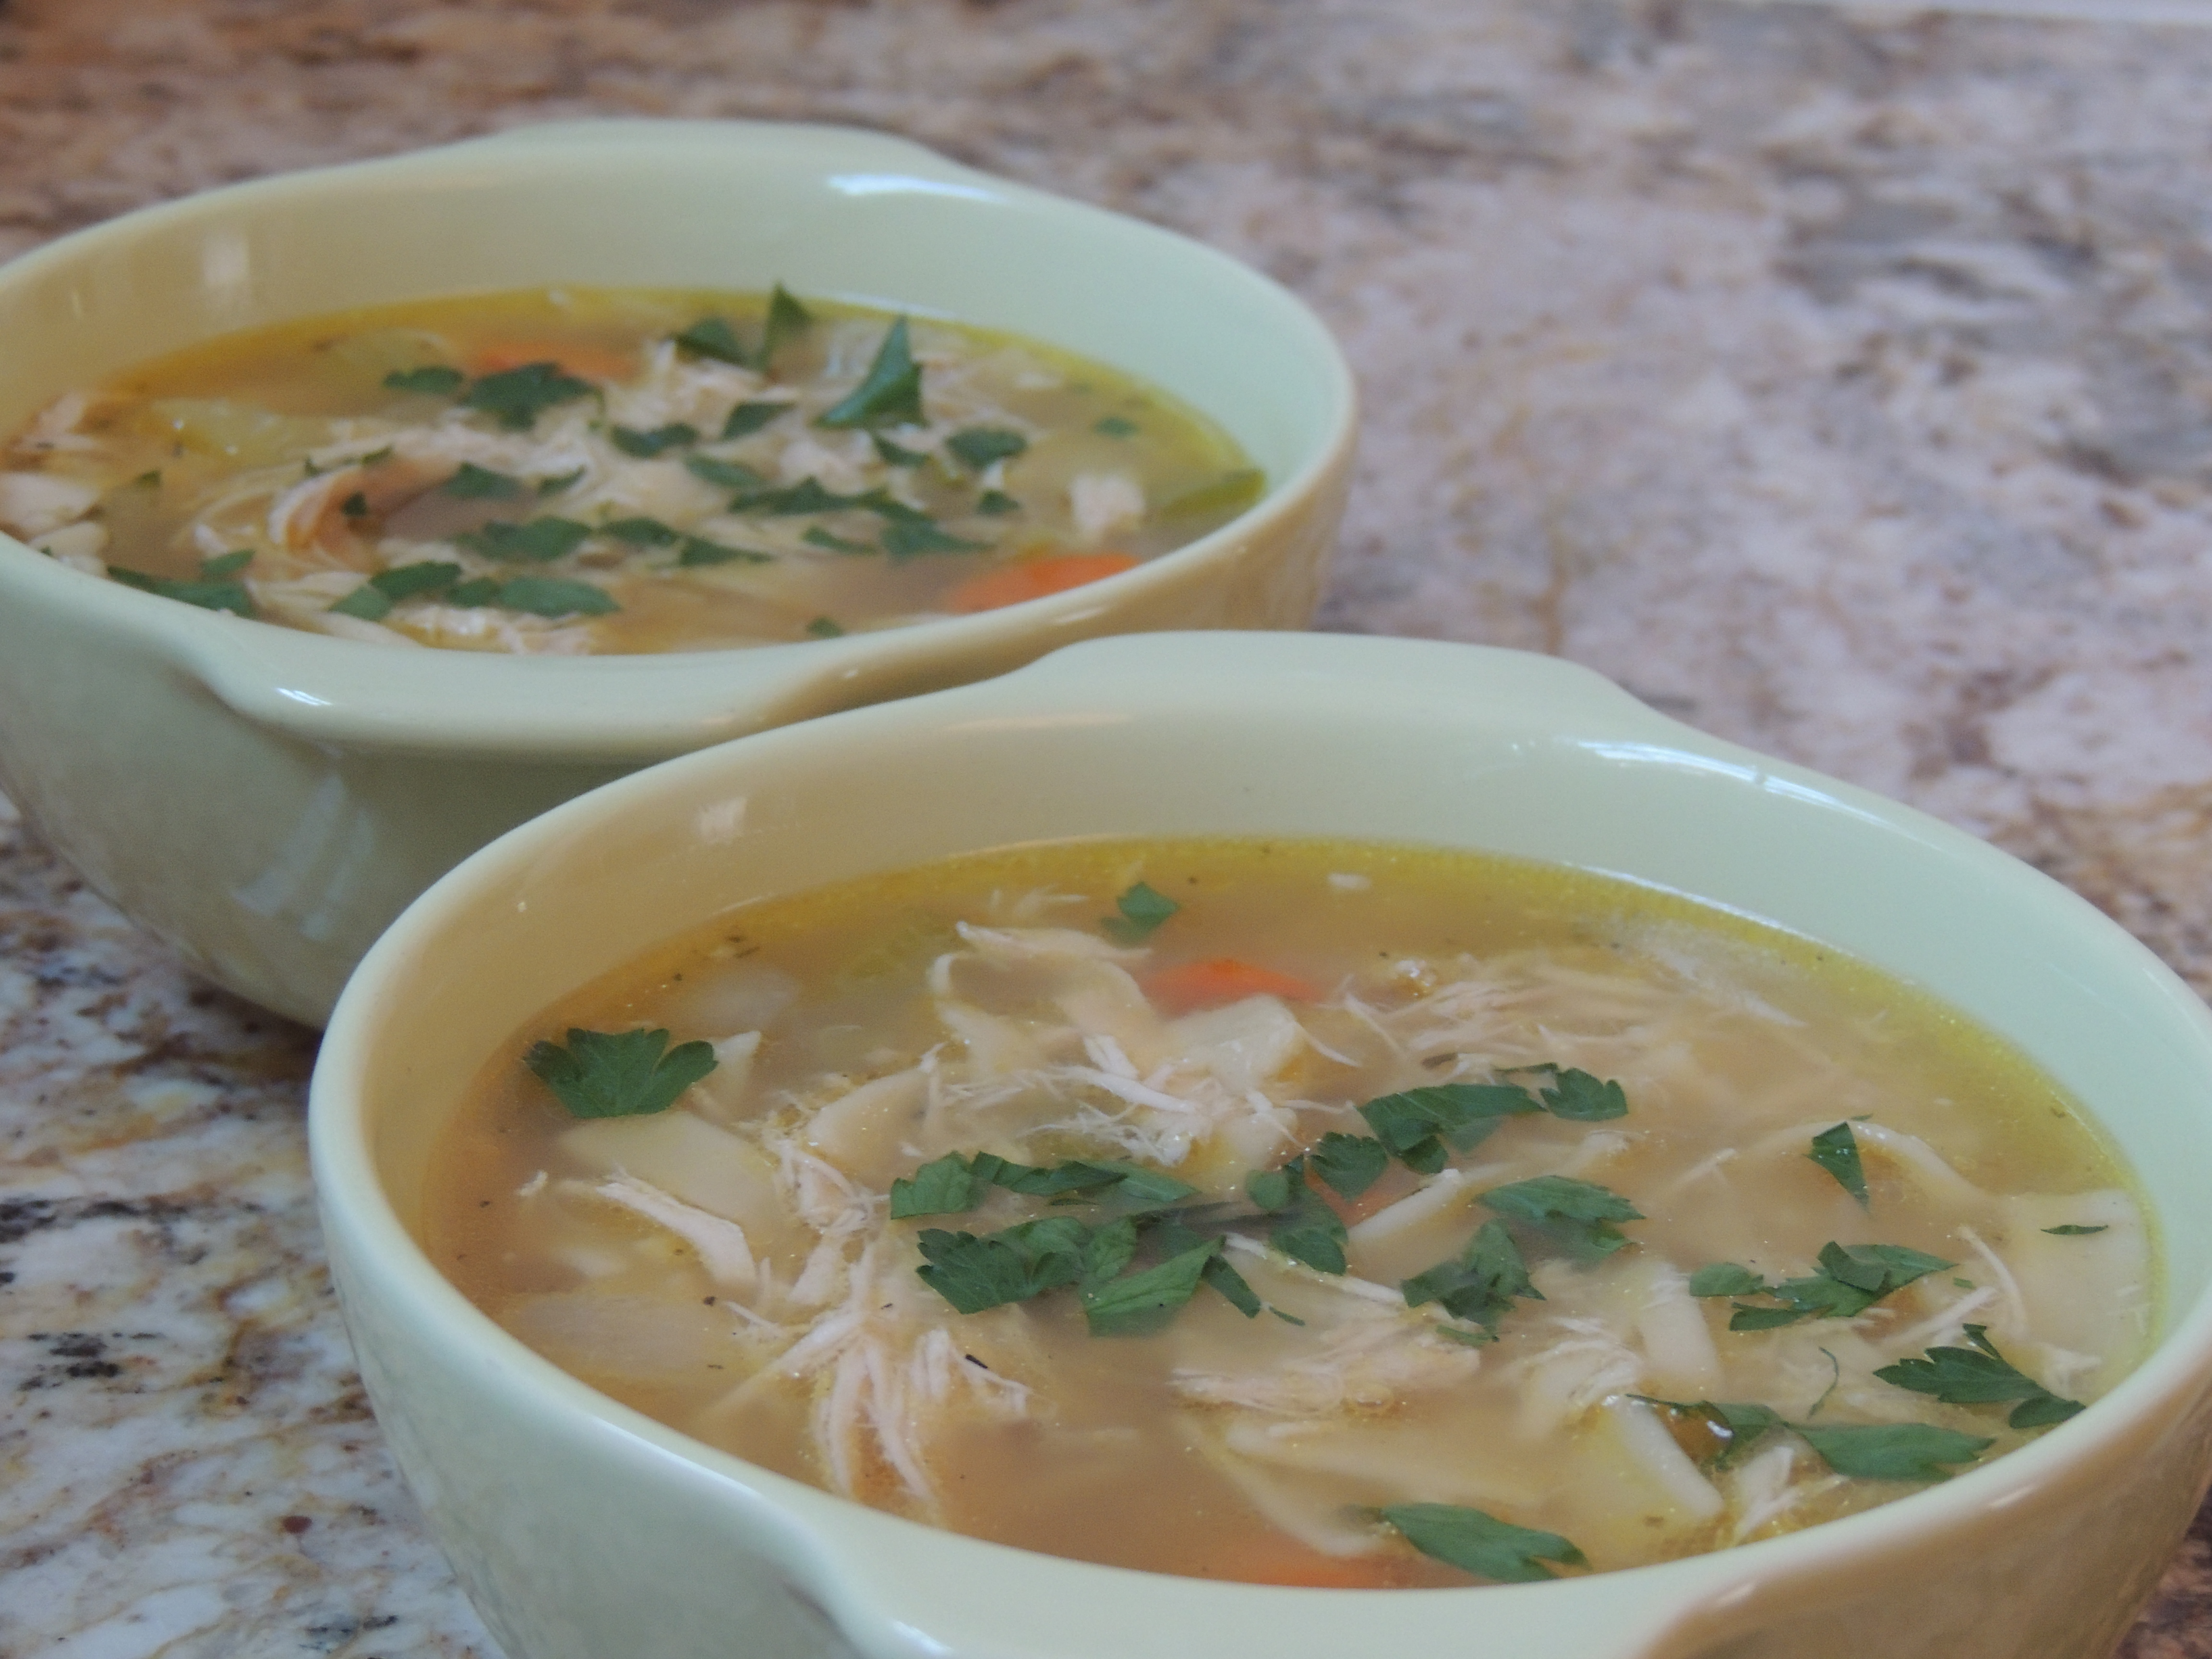 Chicken noodle soup recipe tyler florence food network dinocrofo 50 best sweet potato recipes food network canada forumfinder Image collections